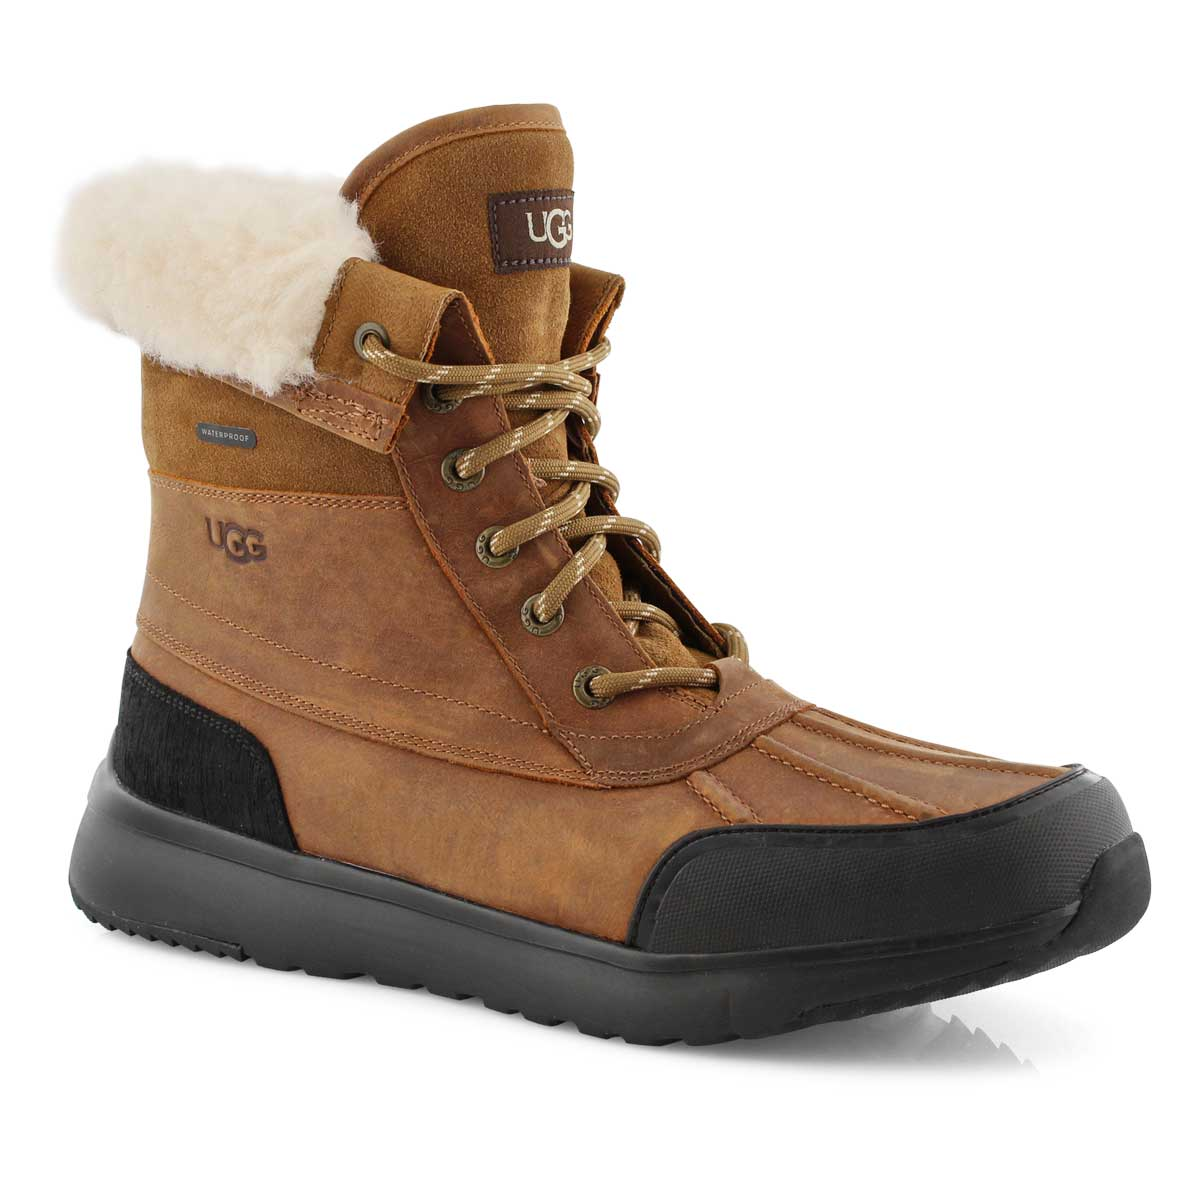 Mns Eliasson wrchstr lace up winter boot